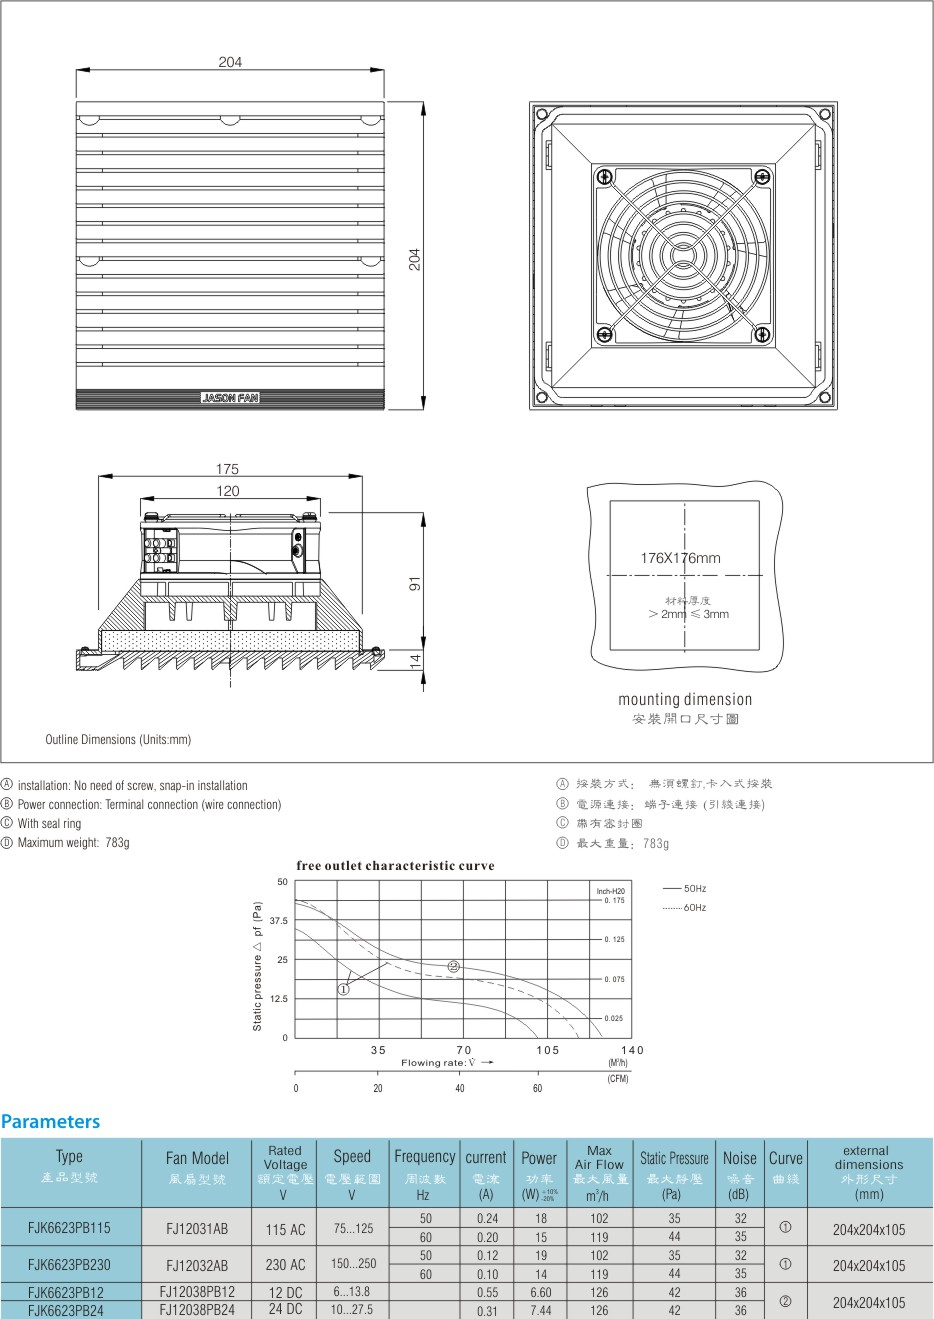 Jason fan AC DC 204*204mm Bathroom Ventilation with Exhaust Fans, air filter for cabinet FJK6623PB